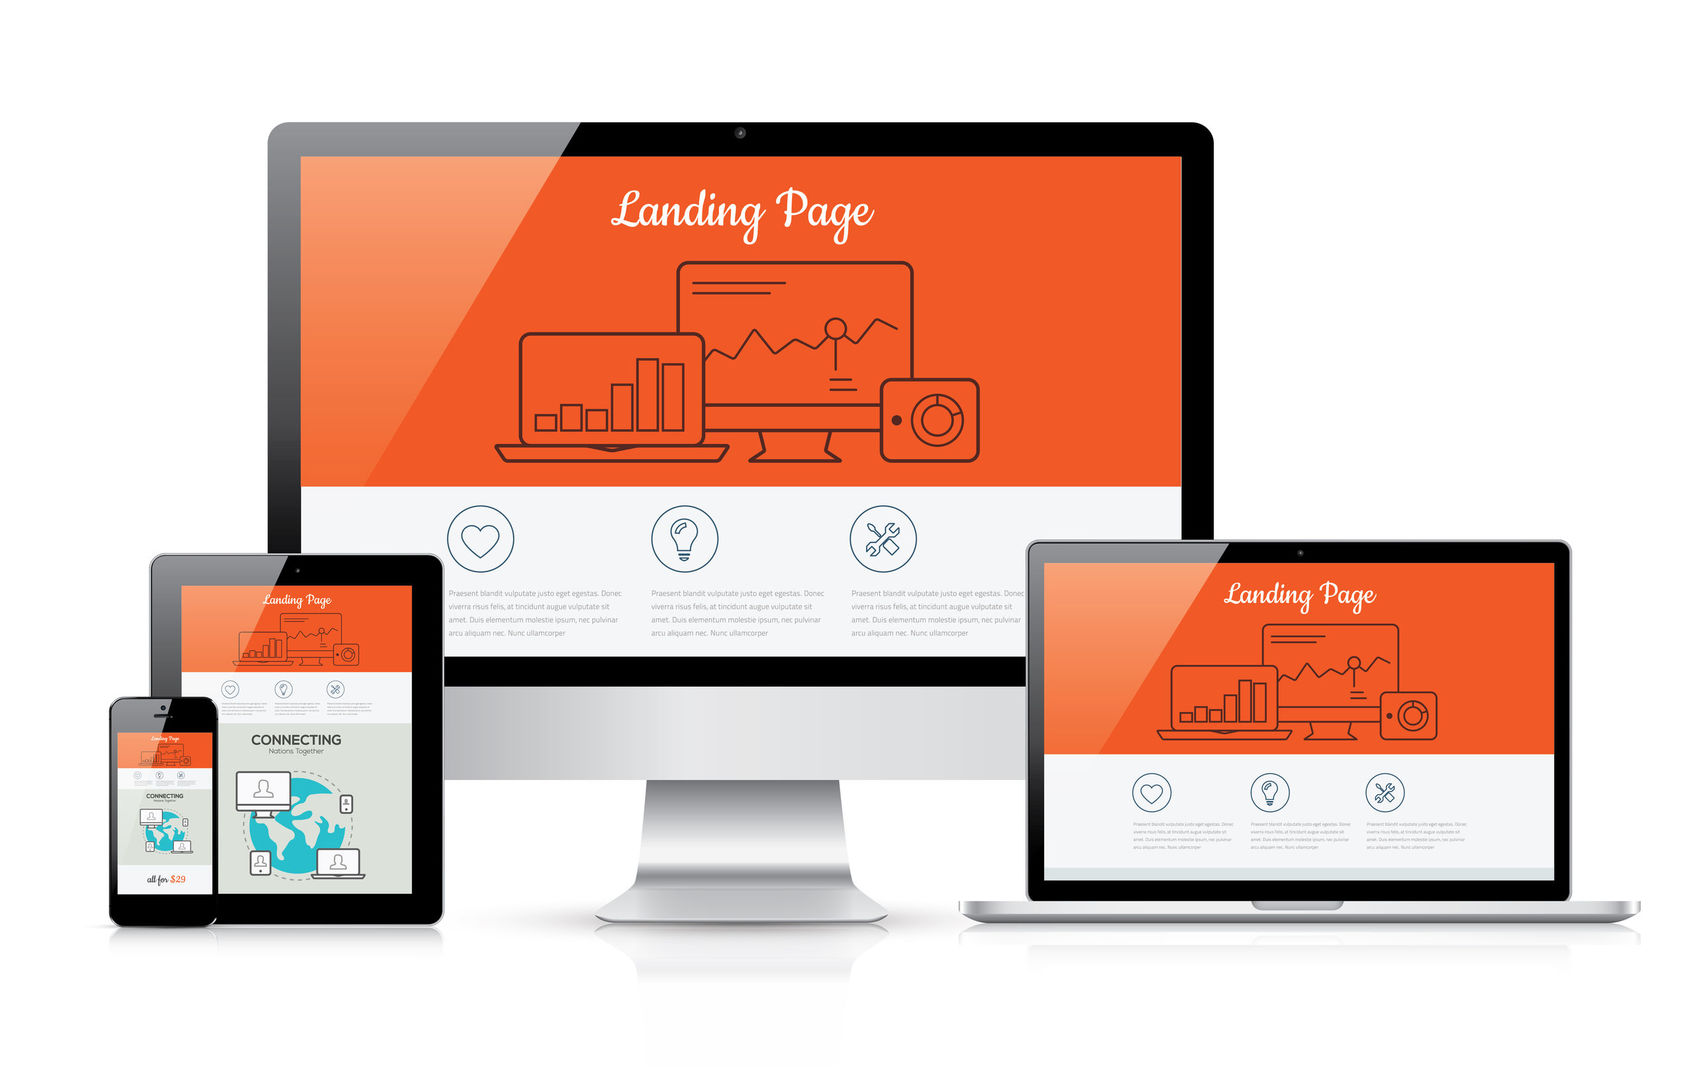 What is Landing Page & How Does It Work